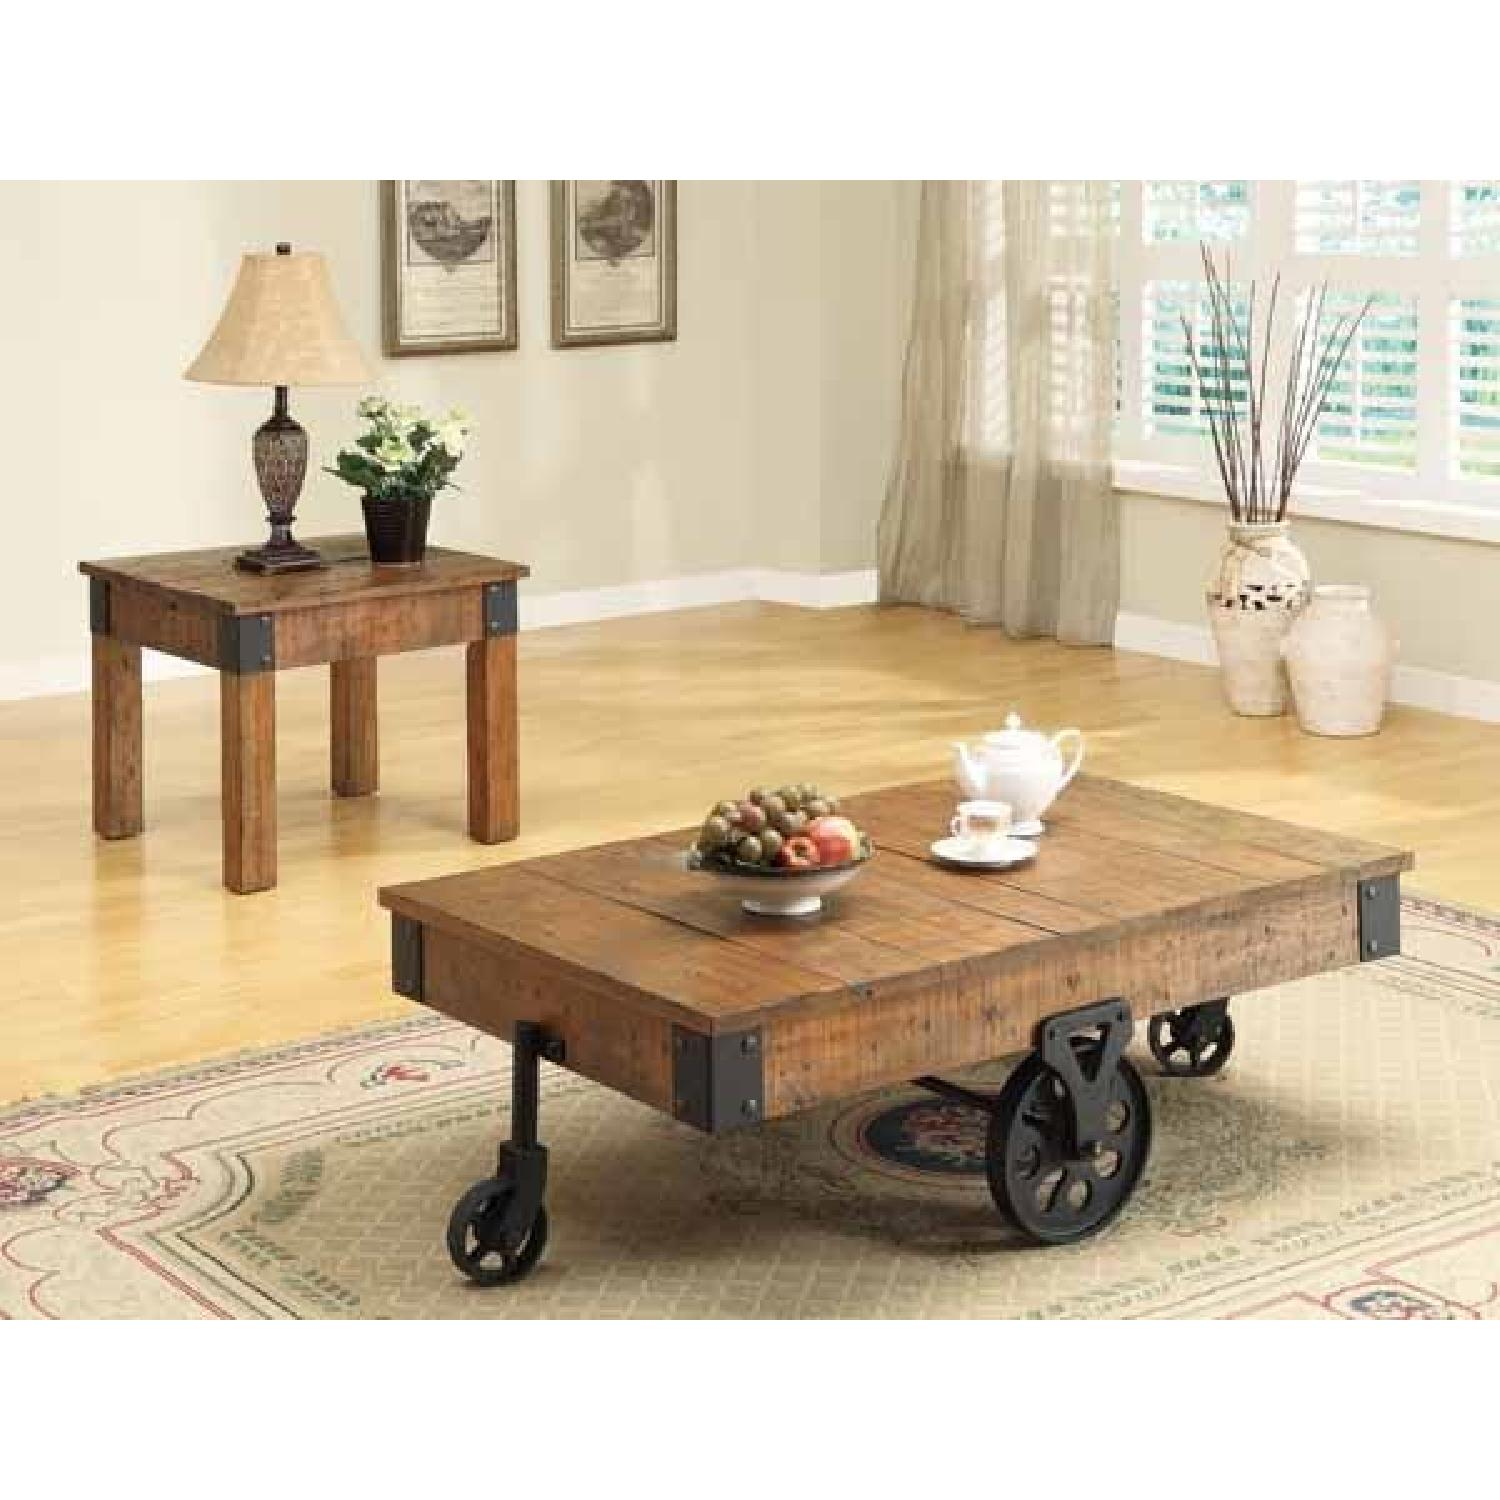 ... Rustic Side Table W/ Distressed Wood Finish U0026 Metal Accent 0 ...